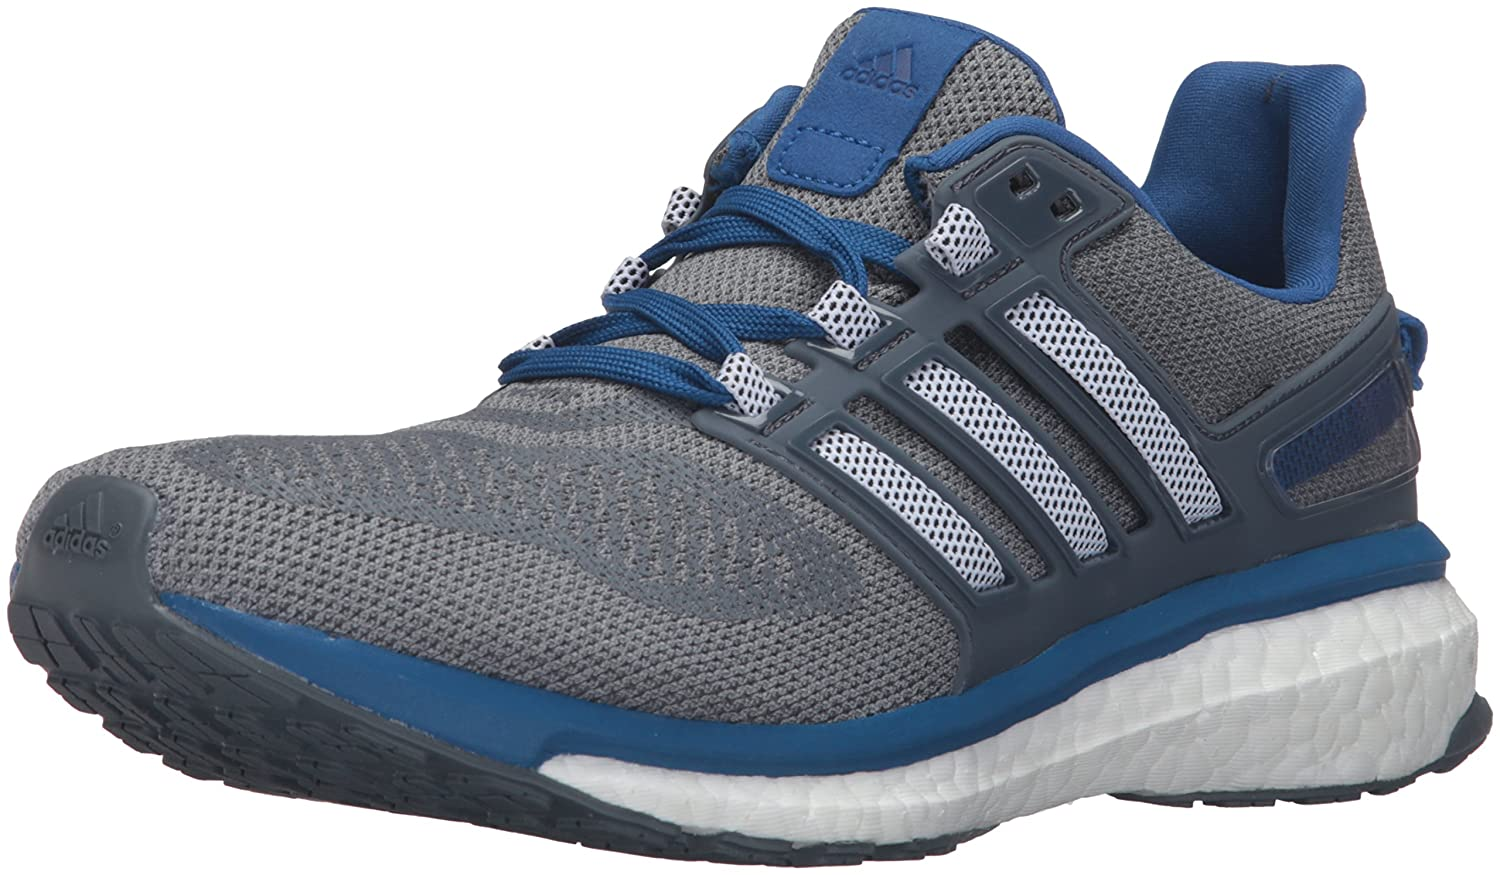 new arrival 99d5d 7bfab Amazon.com  adidas Performance Mens Energy Boost 3 M Running Shoe  Road  Running